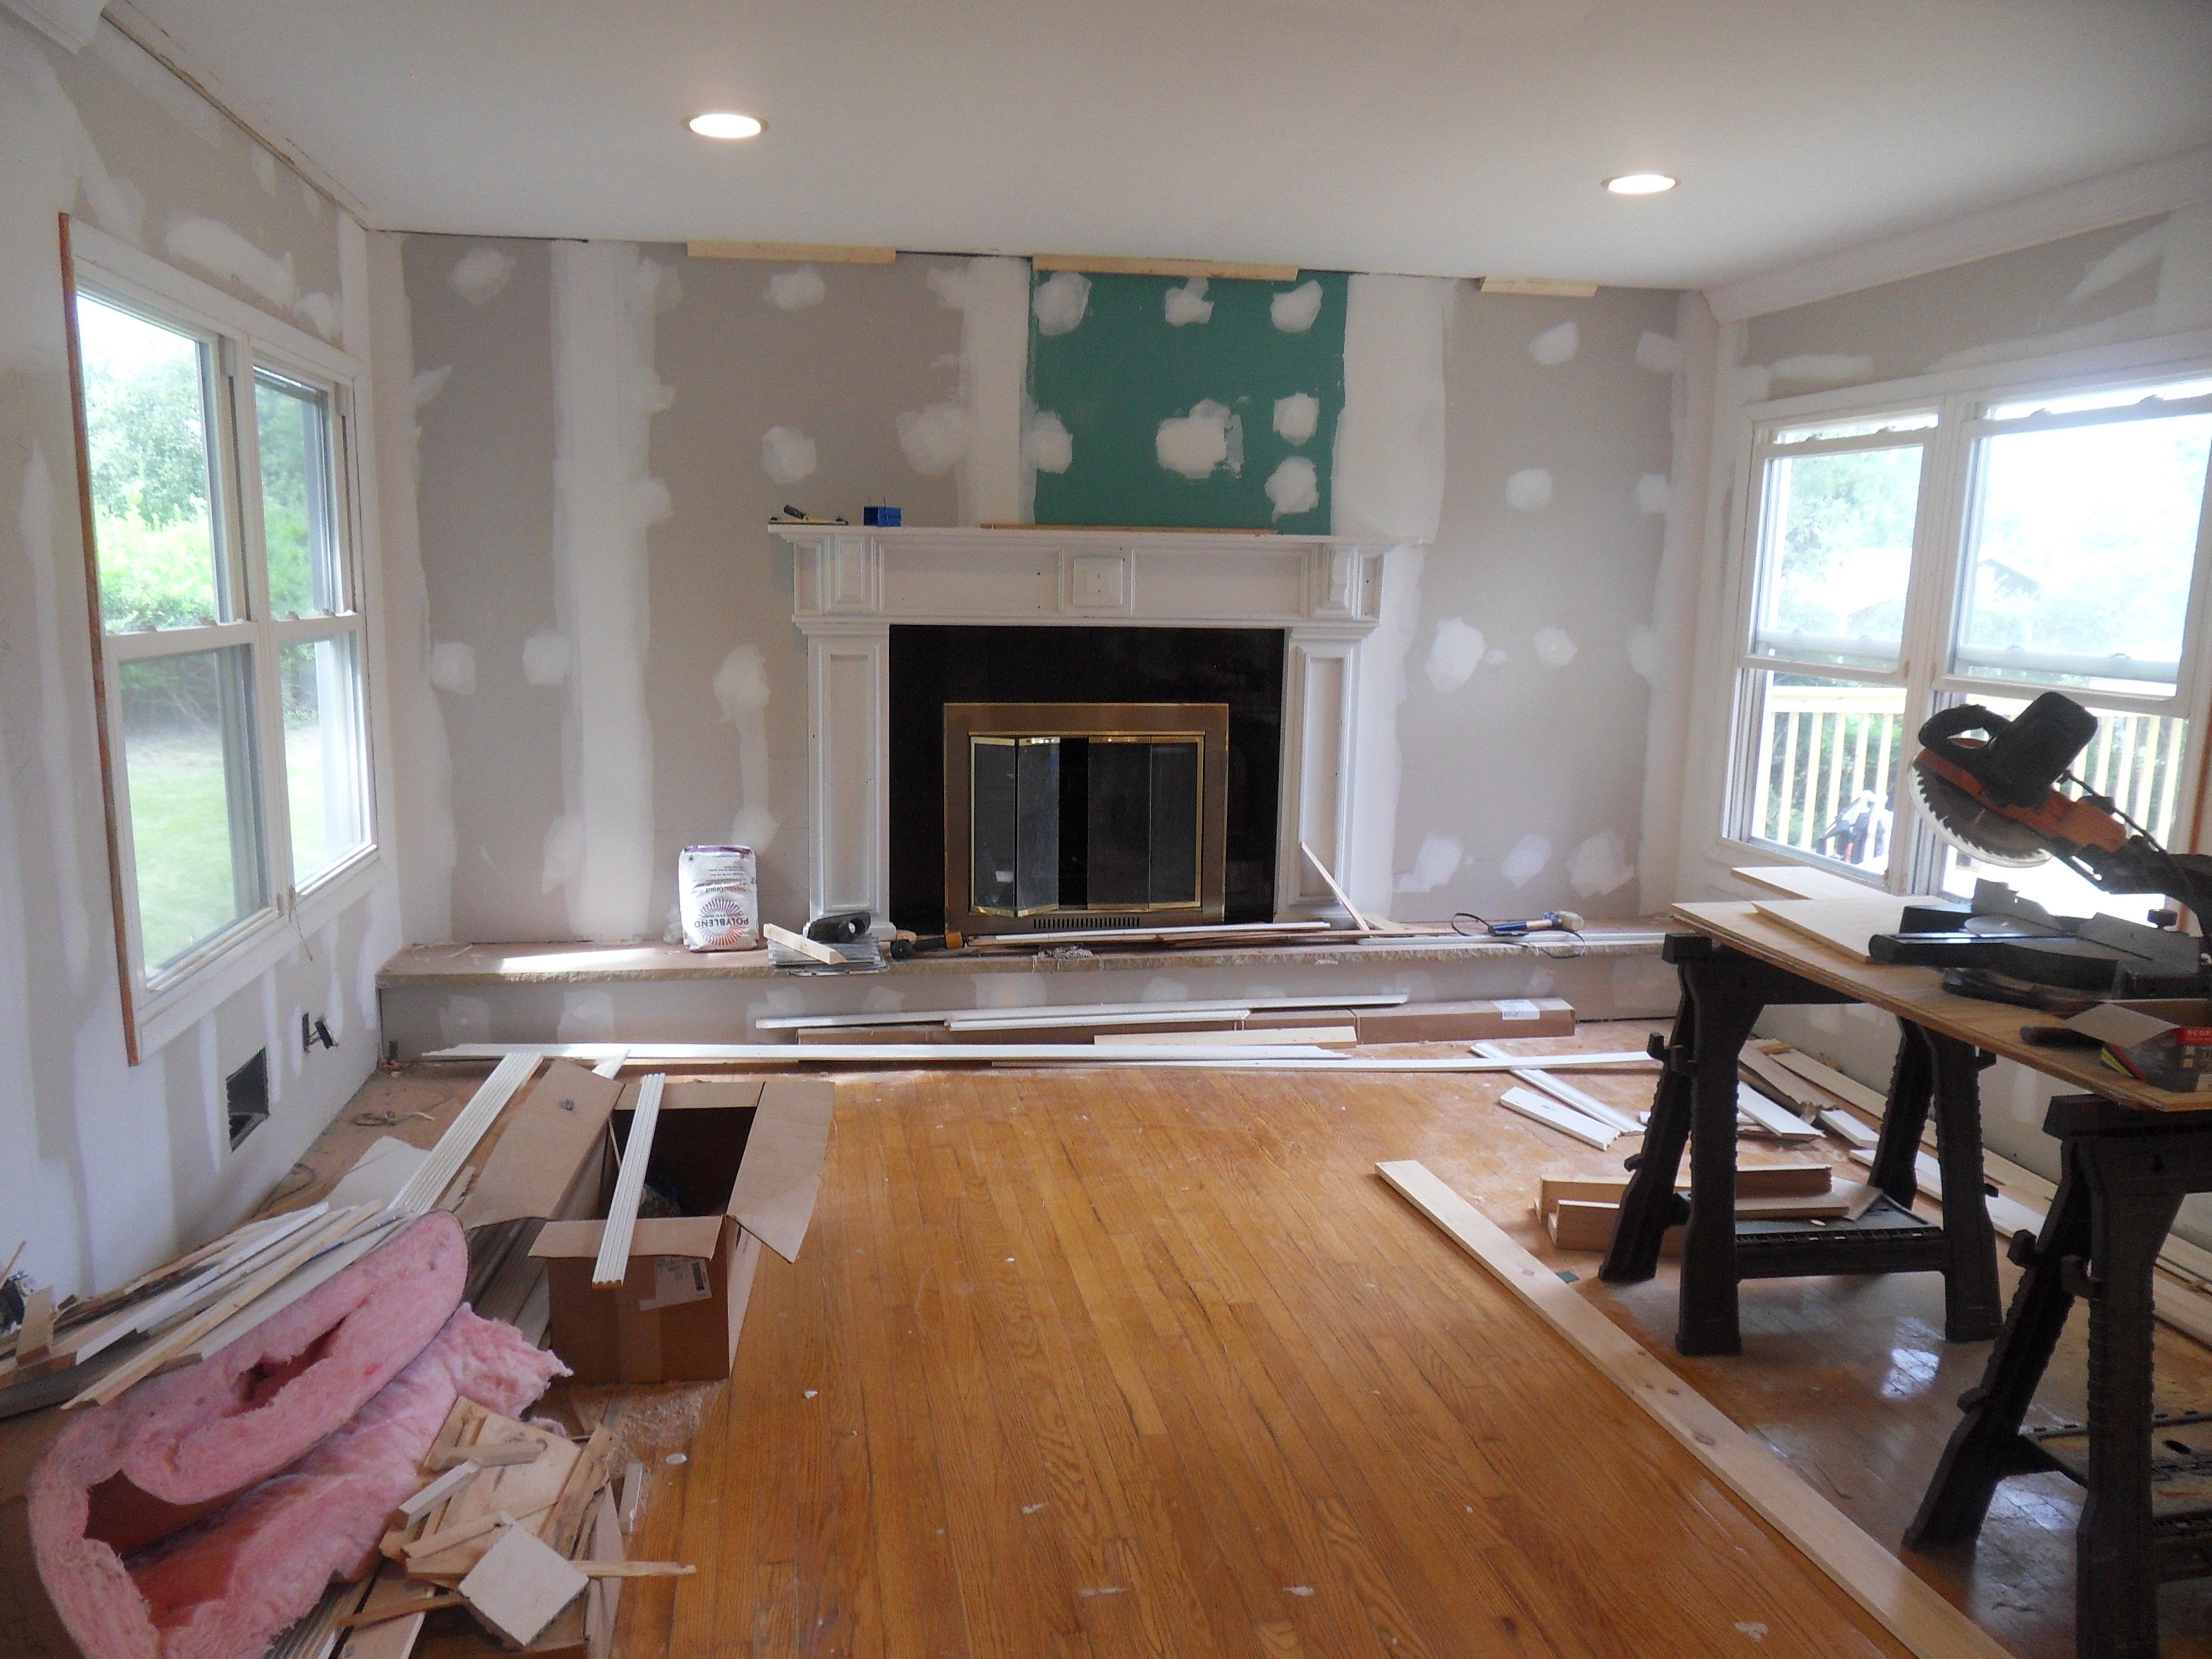 Living Room during initial contruction phase